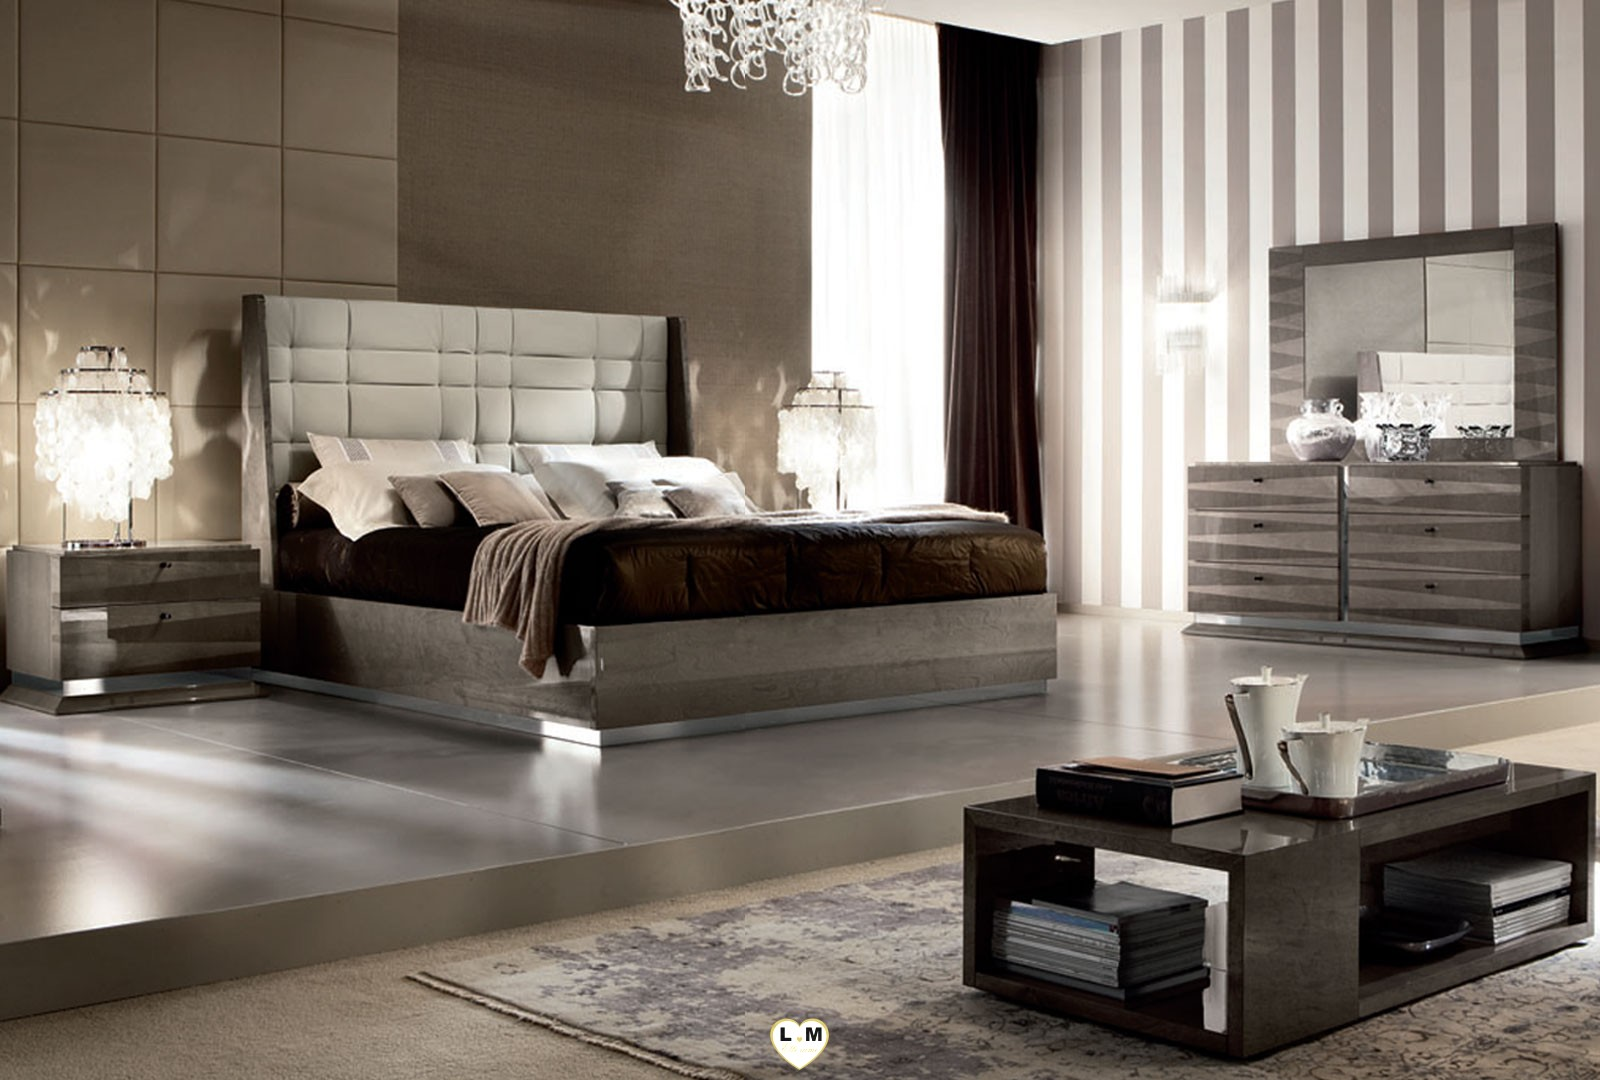 Beverly laque velours taupe ensemble chambre a coucher for Ensemble chambre a coucher